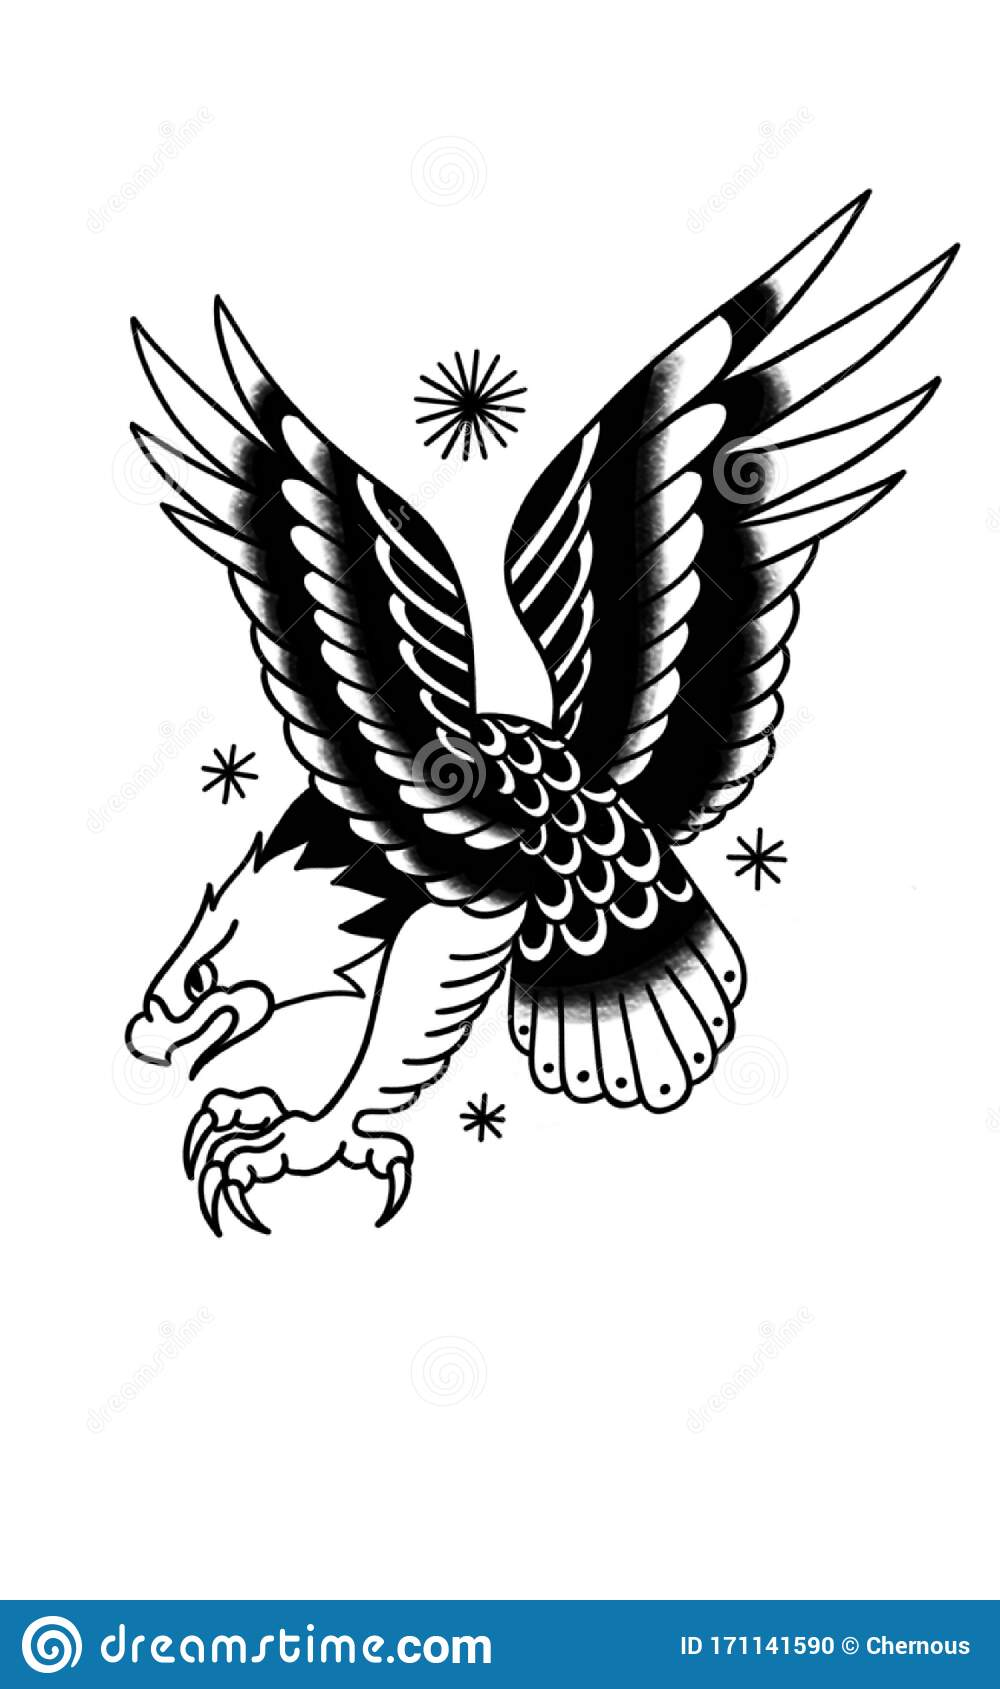 Eagle Traditional Tattoo Stock Illustrations 3 034 Eagle Traditional Tattoo Stock Illustrations Vectors Clipart Dreamstime